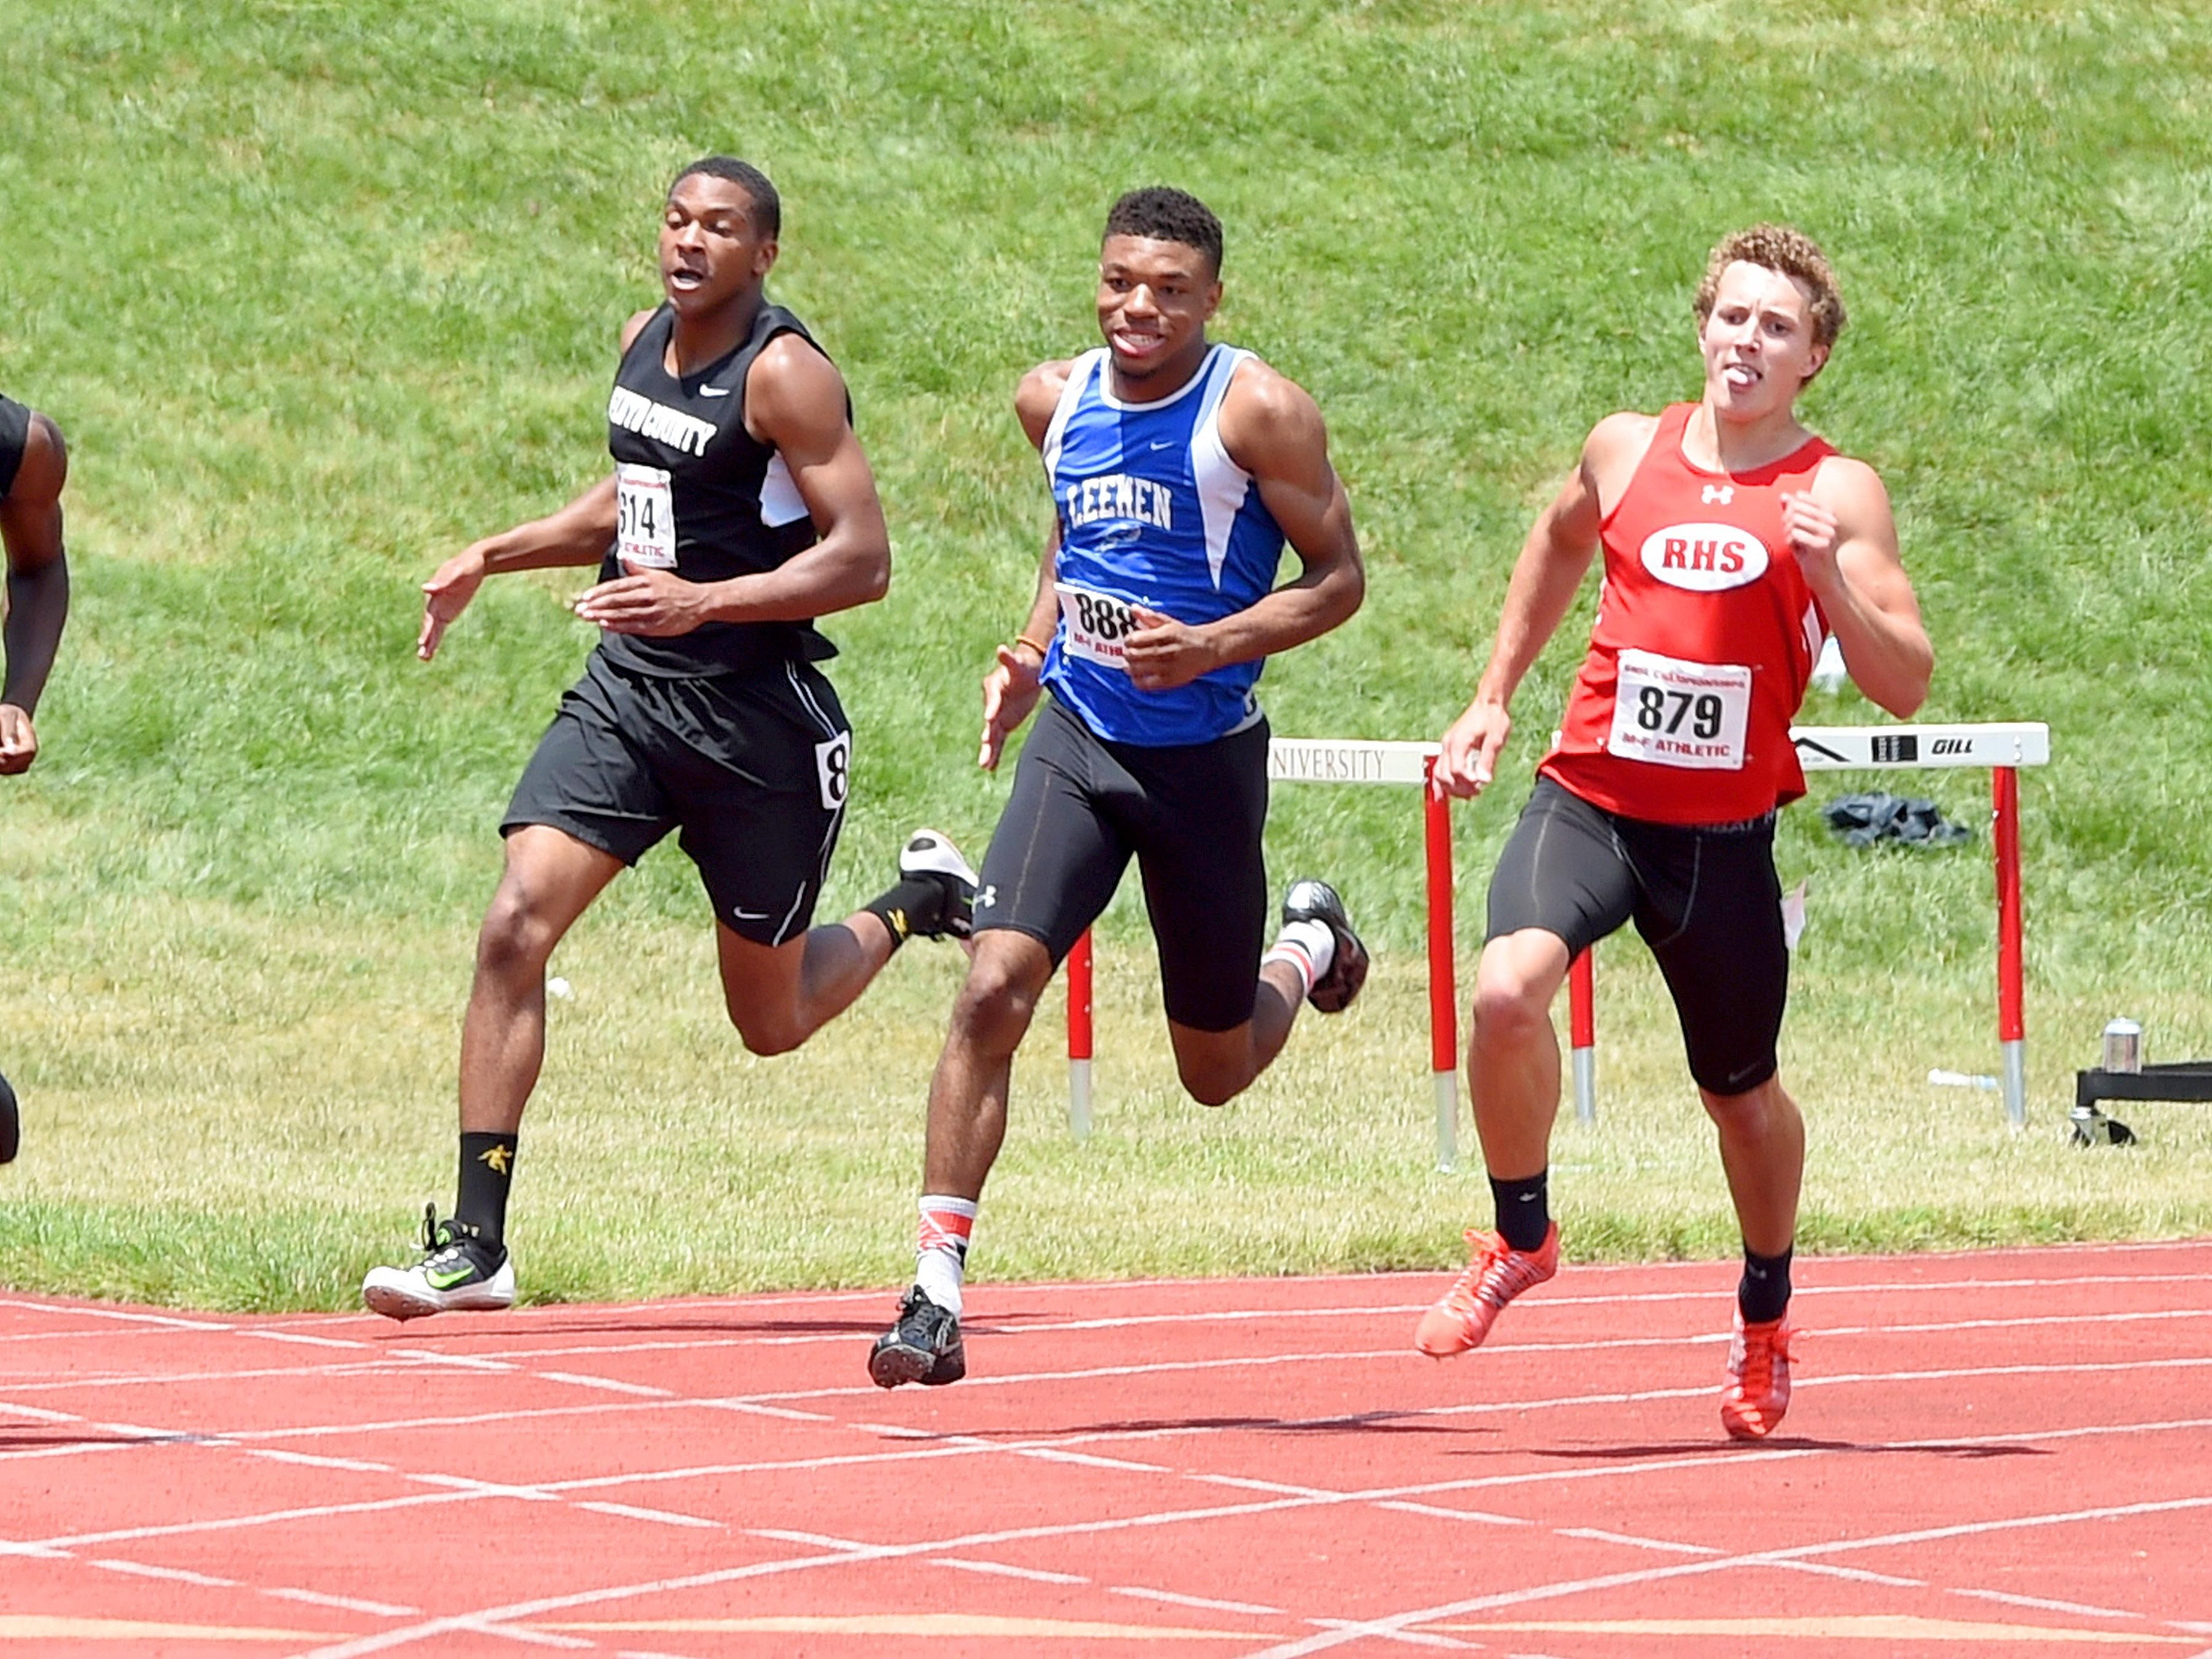 Robert E. Lee's Iyion Oravitz, center, and Riverheads' Landon Diehl, right, finished first and second, respectively at the 1A/2A indoor track championships Thursday in Lynchburg.